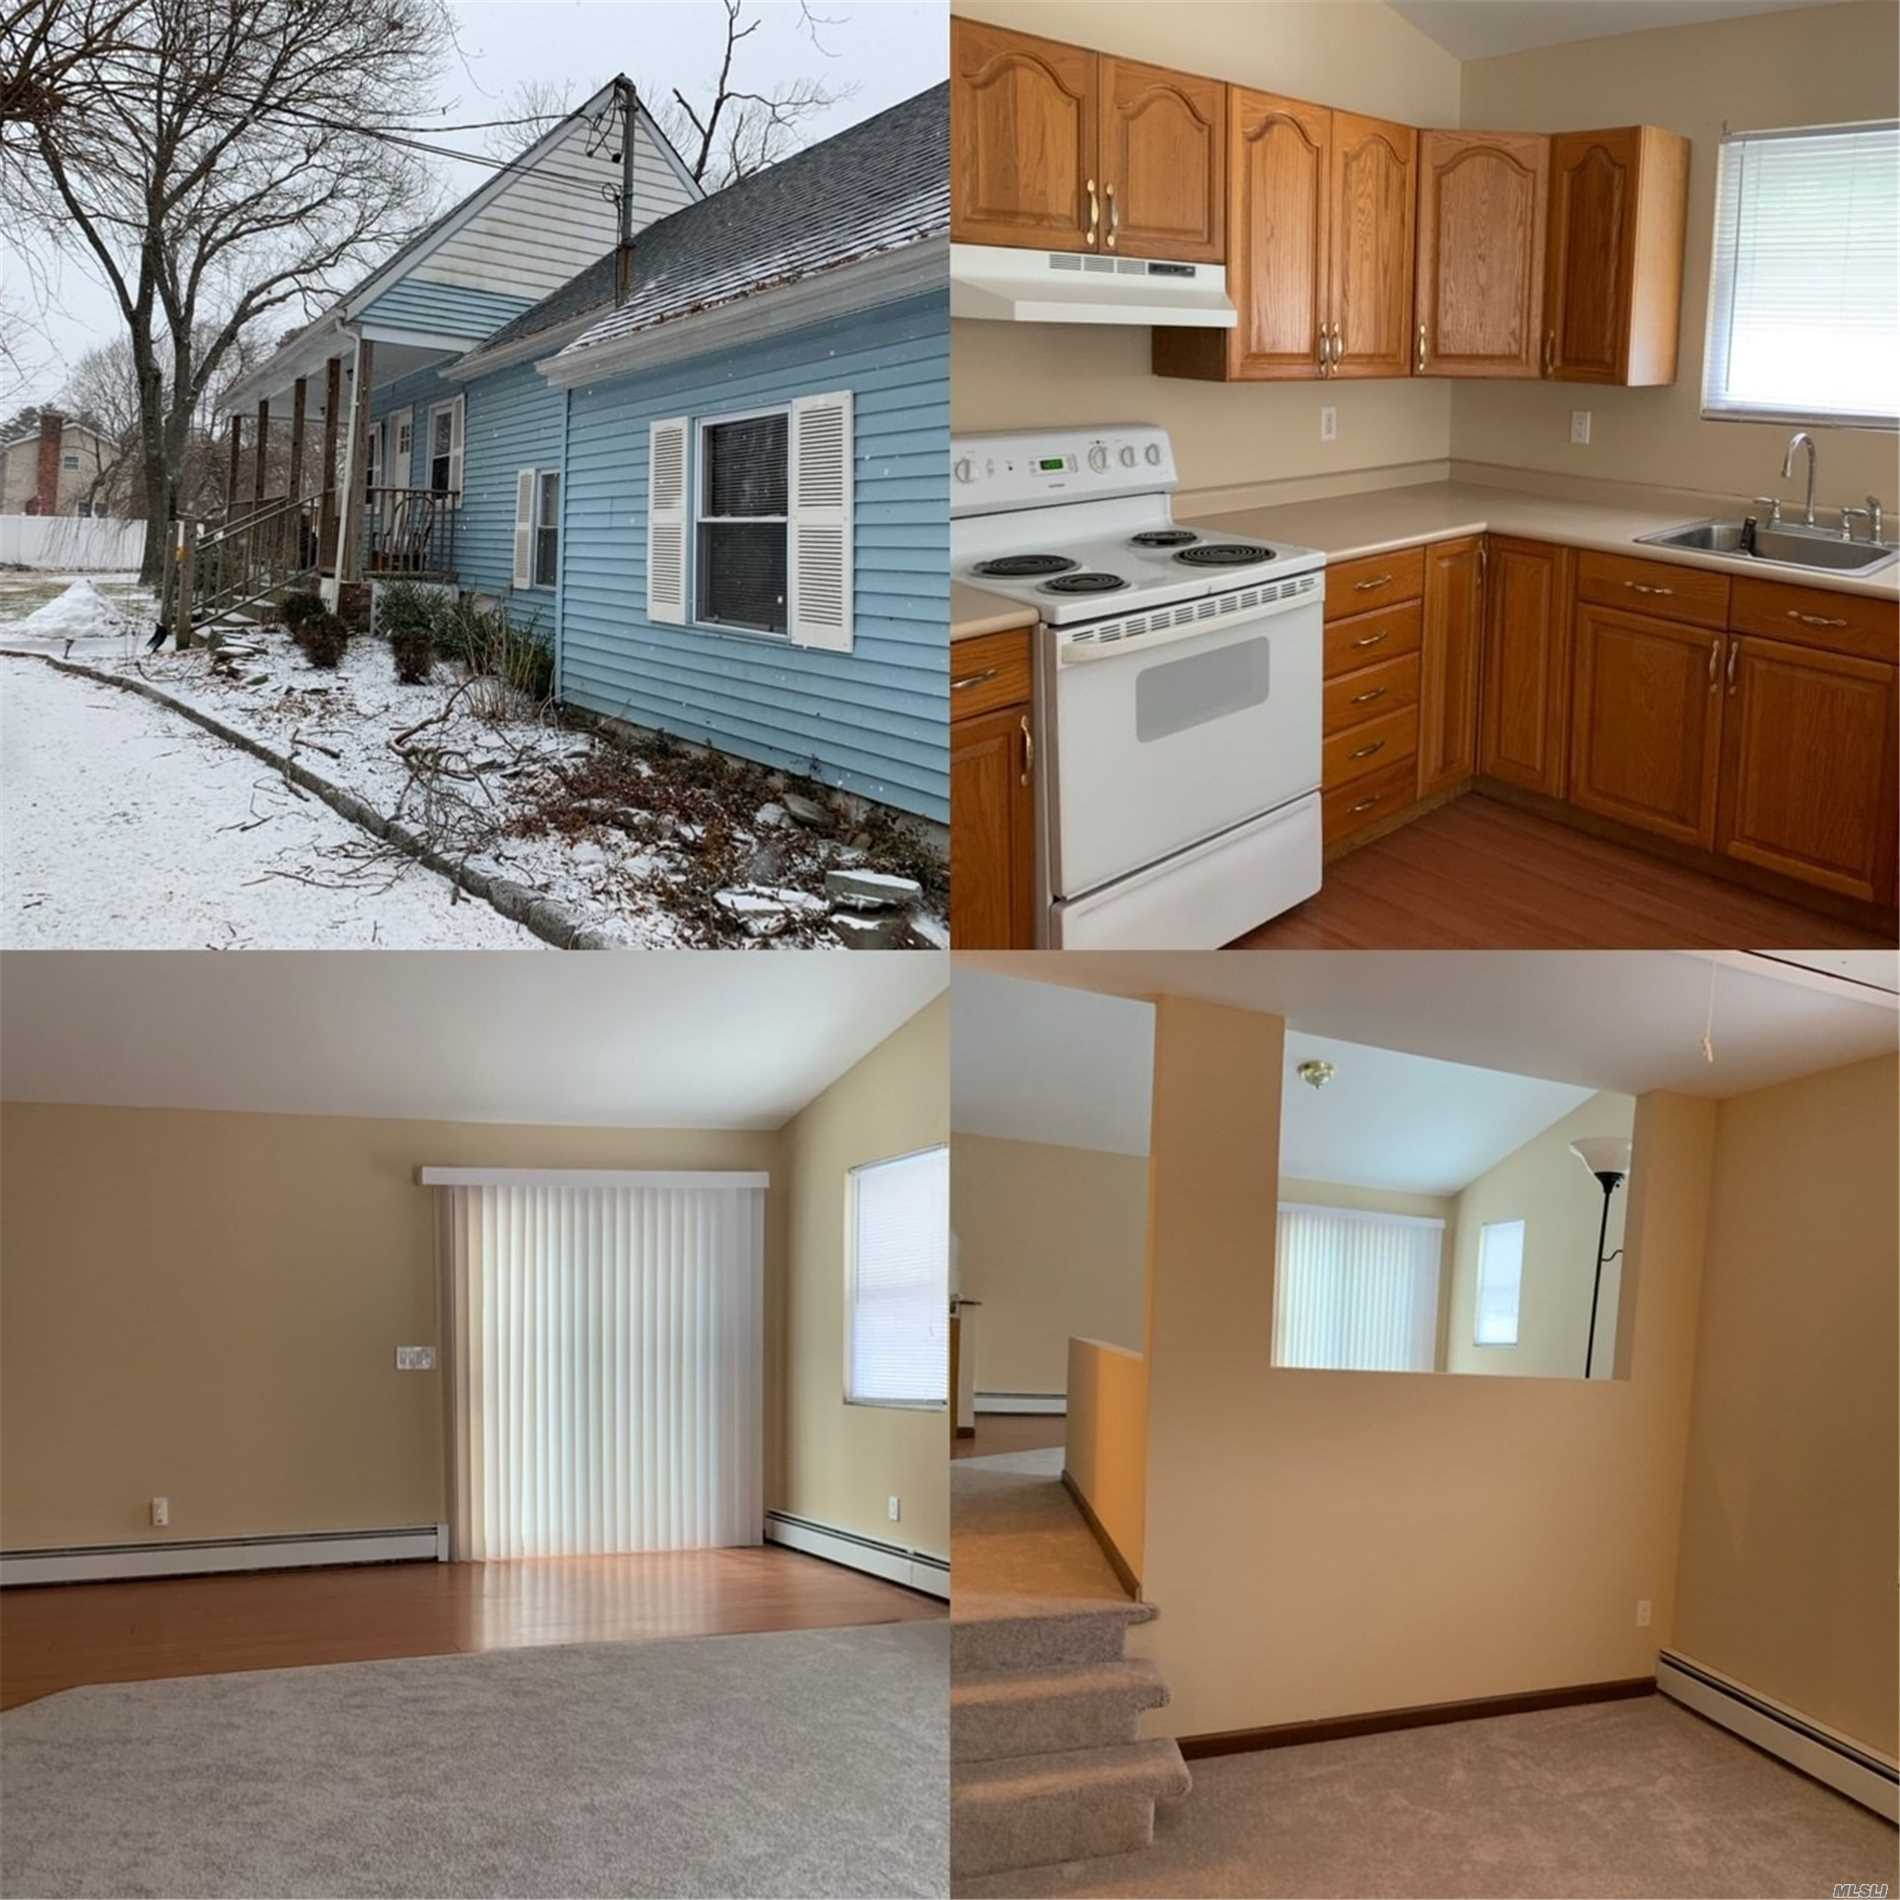 Completely Redone-Cathedral Ceilings, New Cabinets In Kitchen Glass Sliding Doors Leading To Private Deck And Yard Hook Up For Washer/ Dryer,  New Rugs/Floors/Bath And Den. Beautiful Conditions, No Smoking No Pets , Credit And References A Must - Spacious Backyard